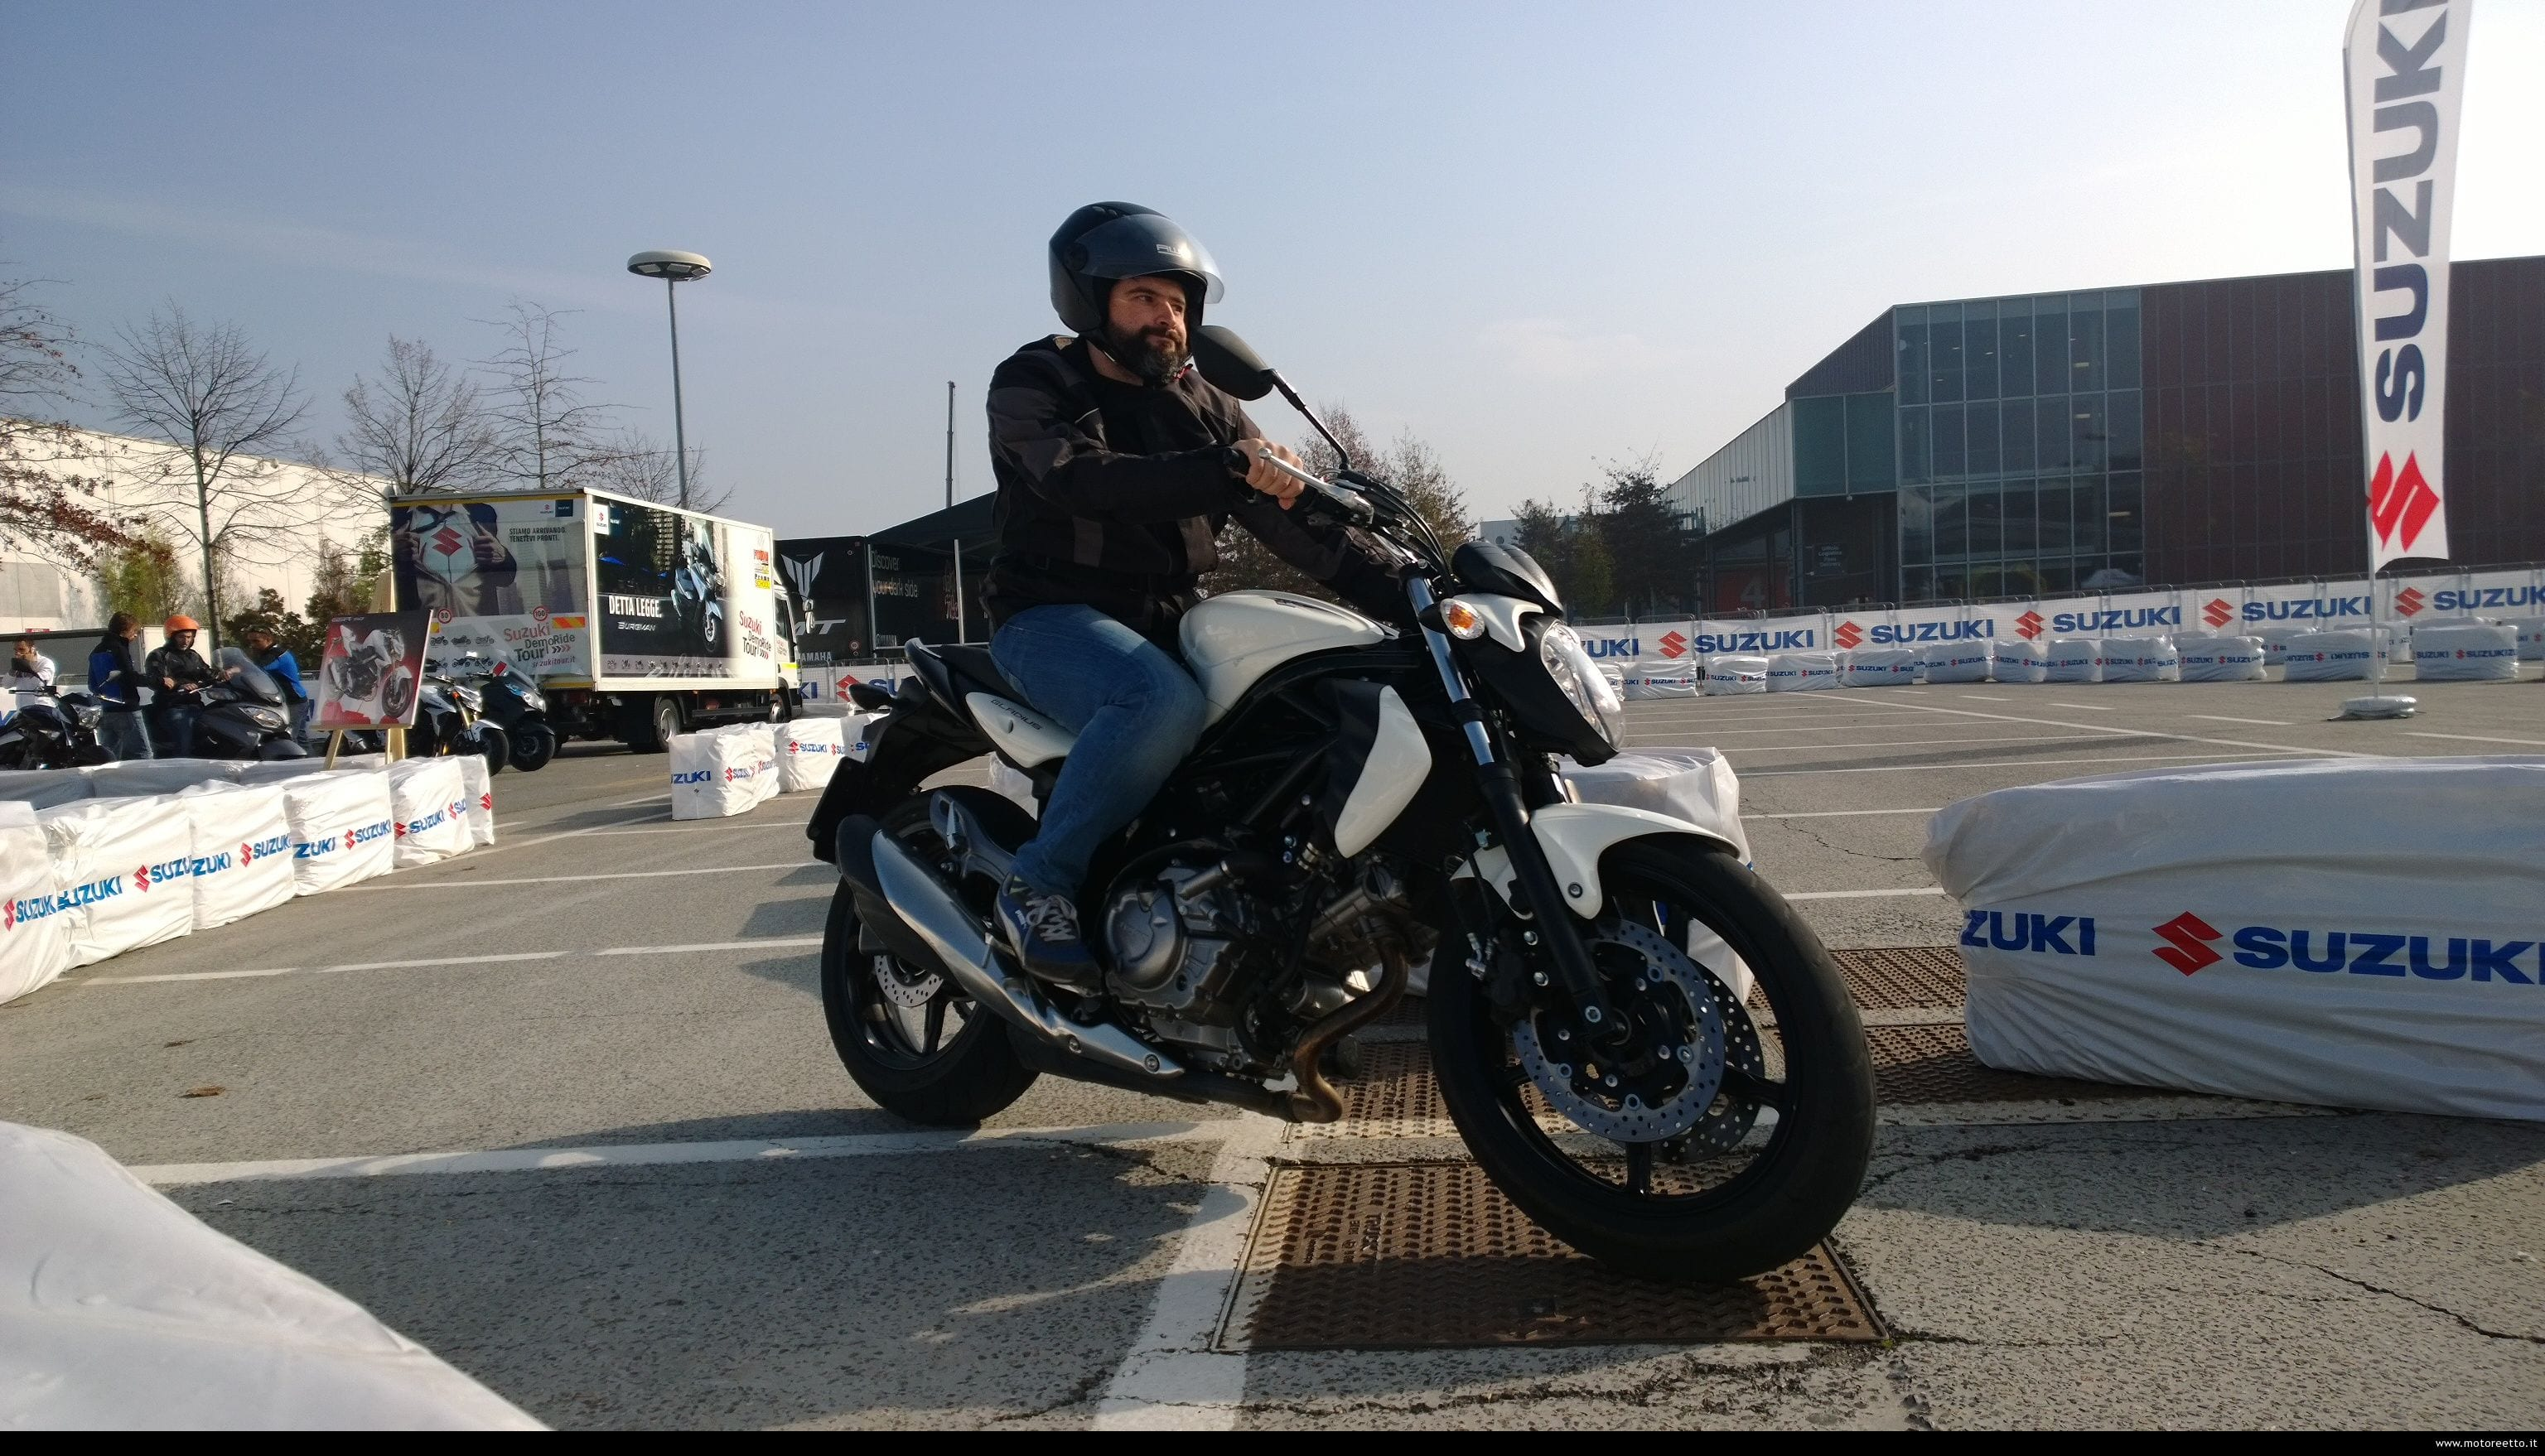 foto a suzuki gladius 650 scattata con windows nokia lumia 1020